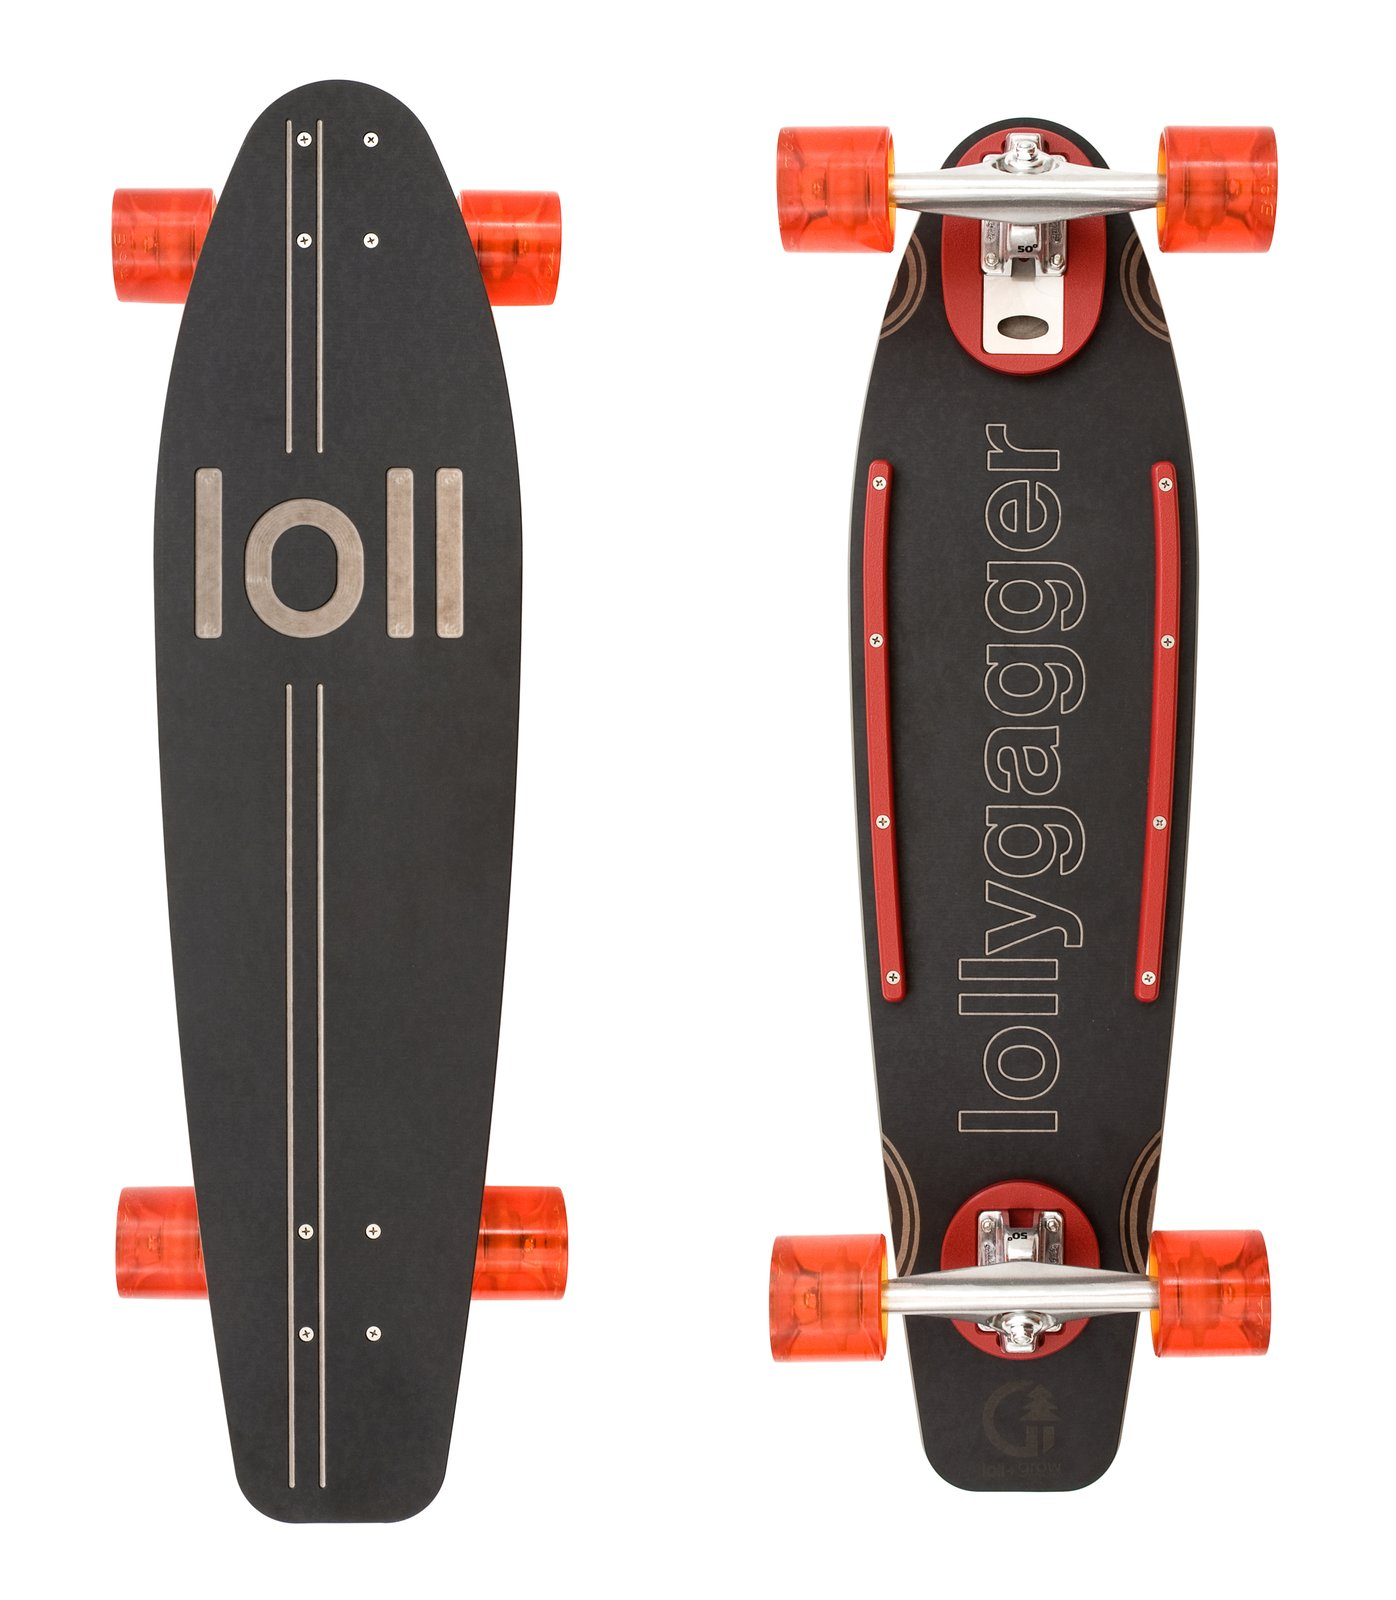 The company stays close to its roots with the Lollygagger longboard, teaming up with skate company Grow Anthology to create the most eco-friendly, smooth ride.  Modern Skate from Recycled Outdoor Furniture from a Former Skateboard Park Company